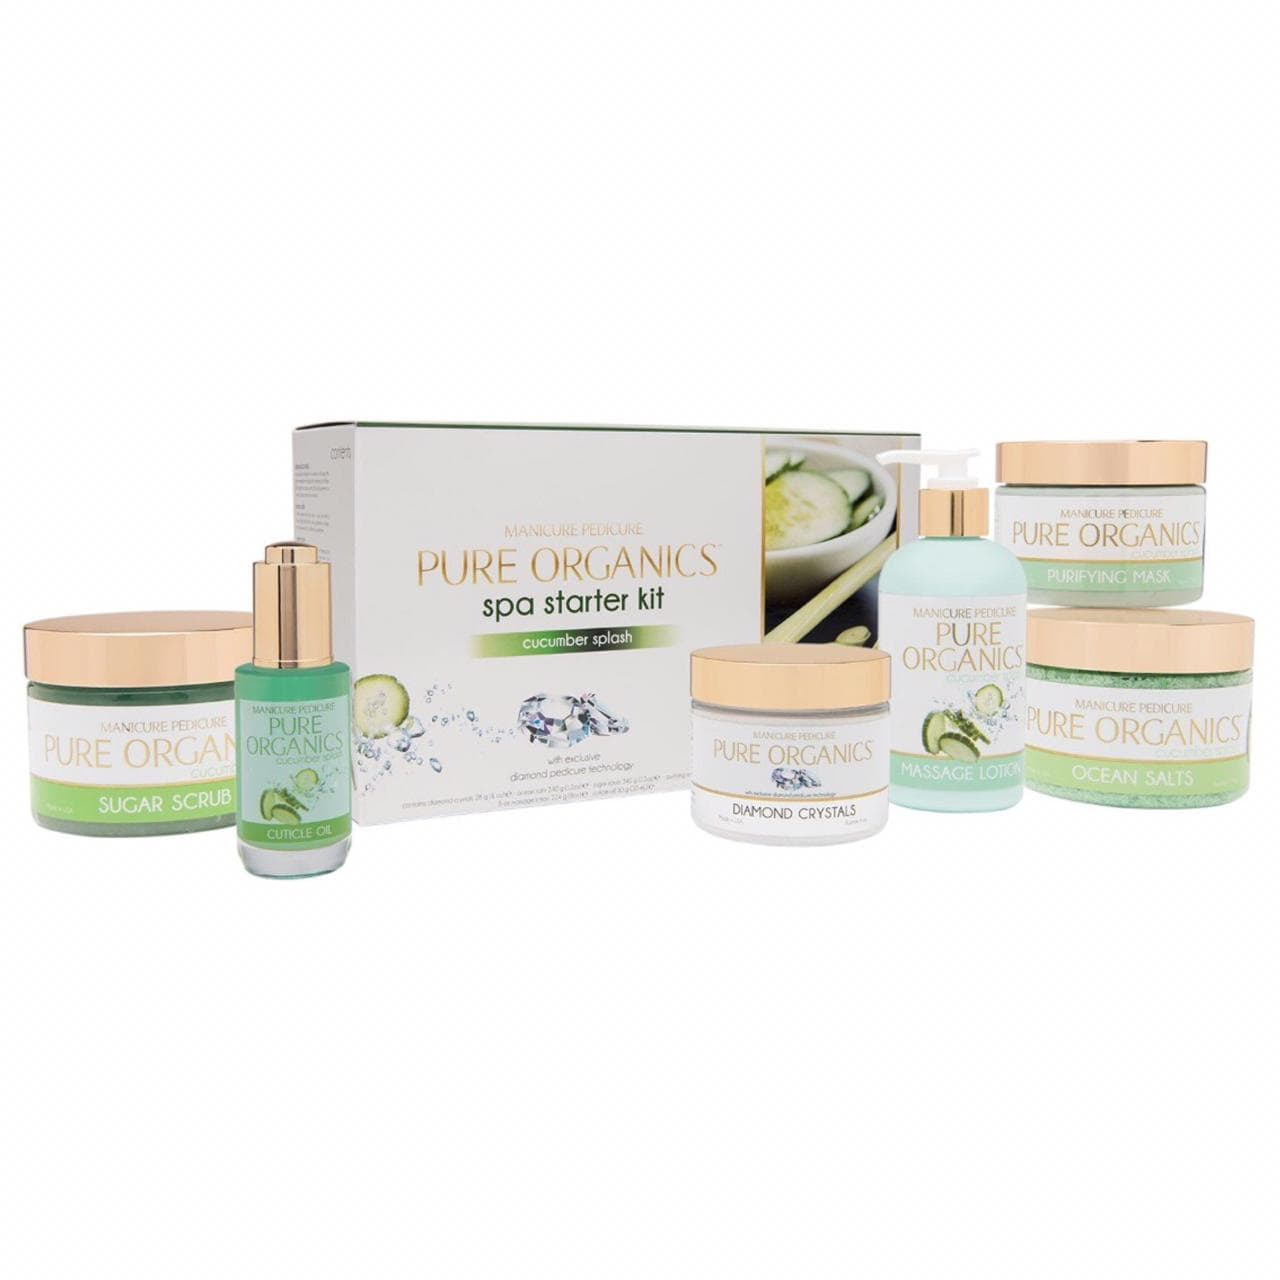 Foot spa, Spa starter kit, Pedicure, Foot care